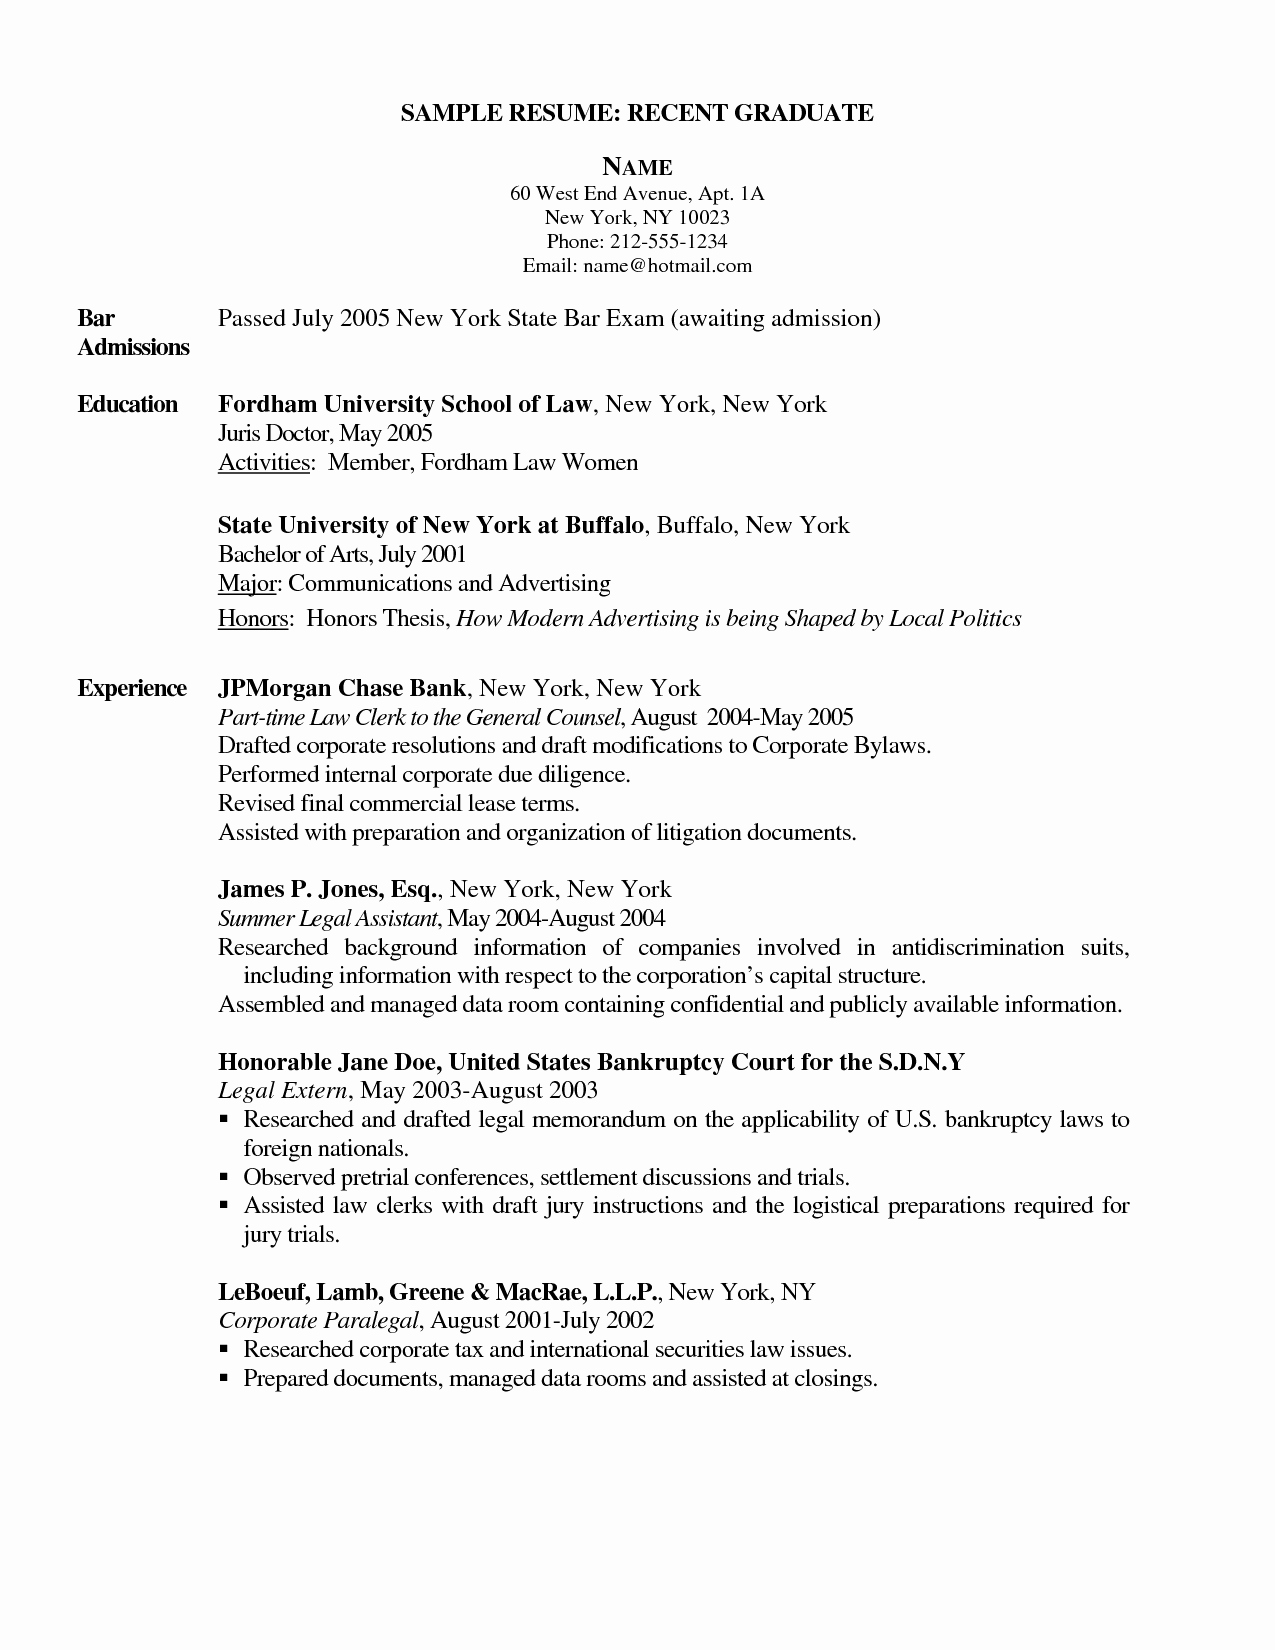 Graduate Nurse Resume Template Awesome New Graduate Nurse Resume Sidemcicek